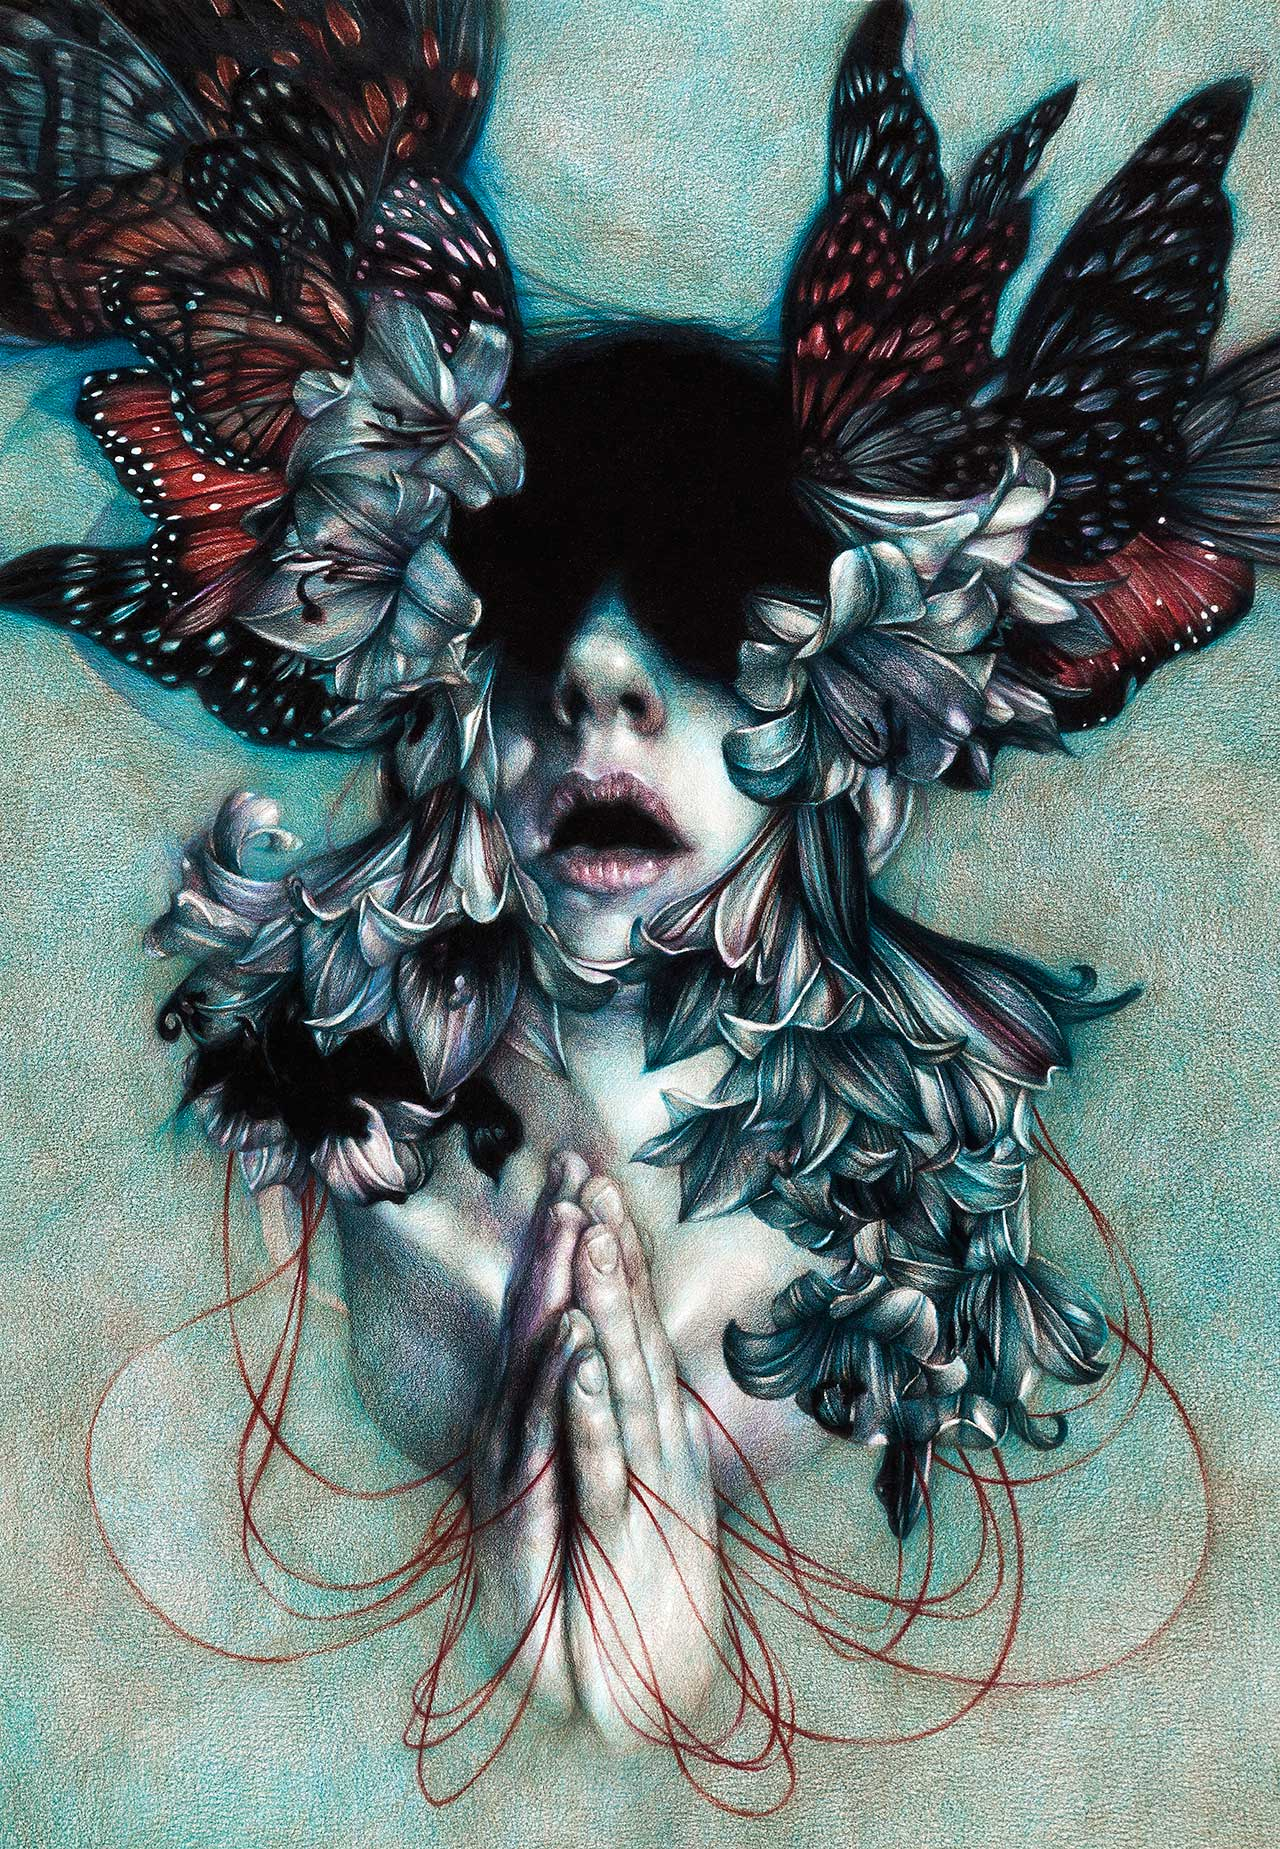 Marco Mazzoni, The Hell As An Empty Space, 2012 © Marco Mazzoni.